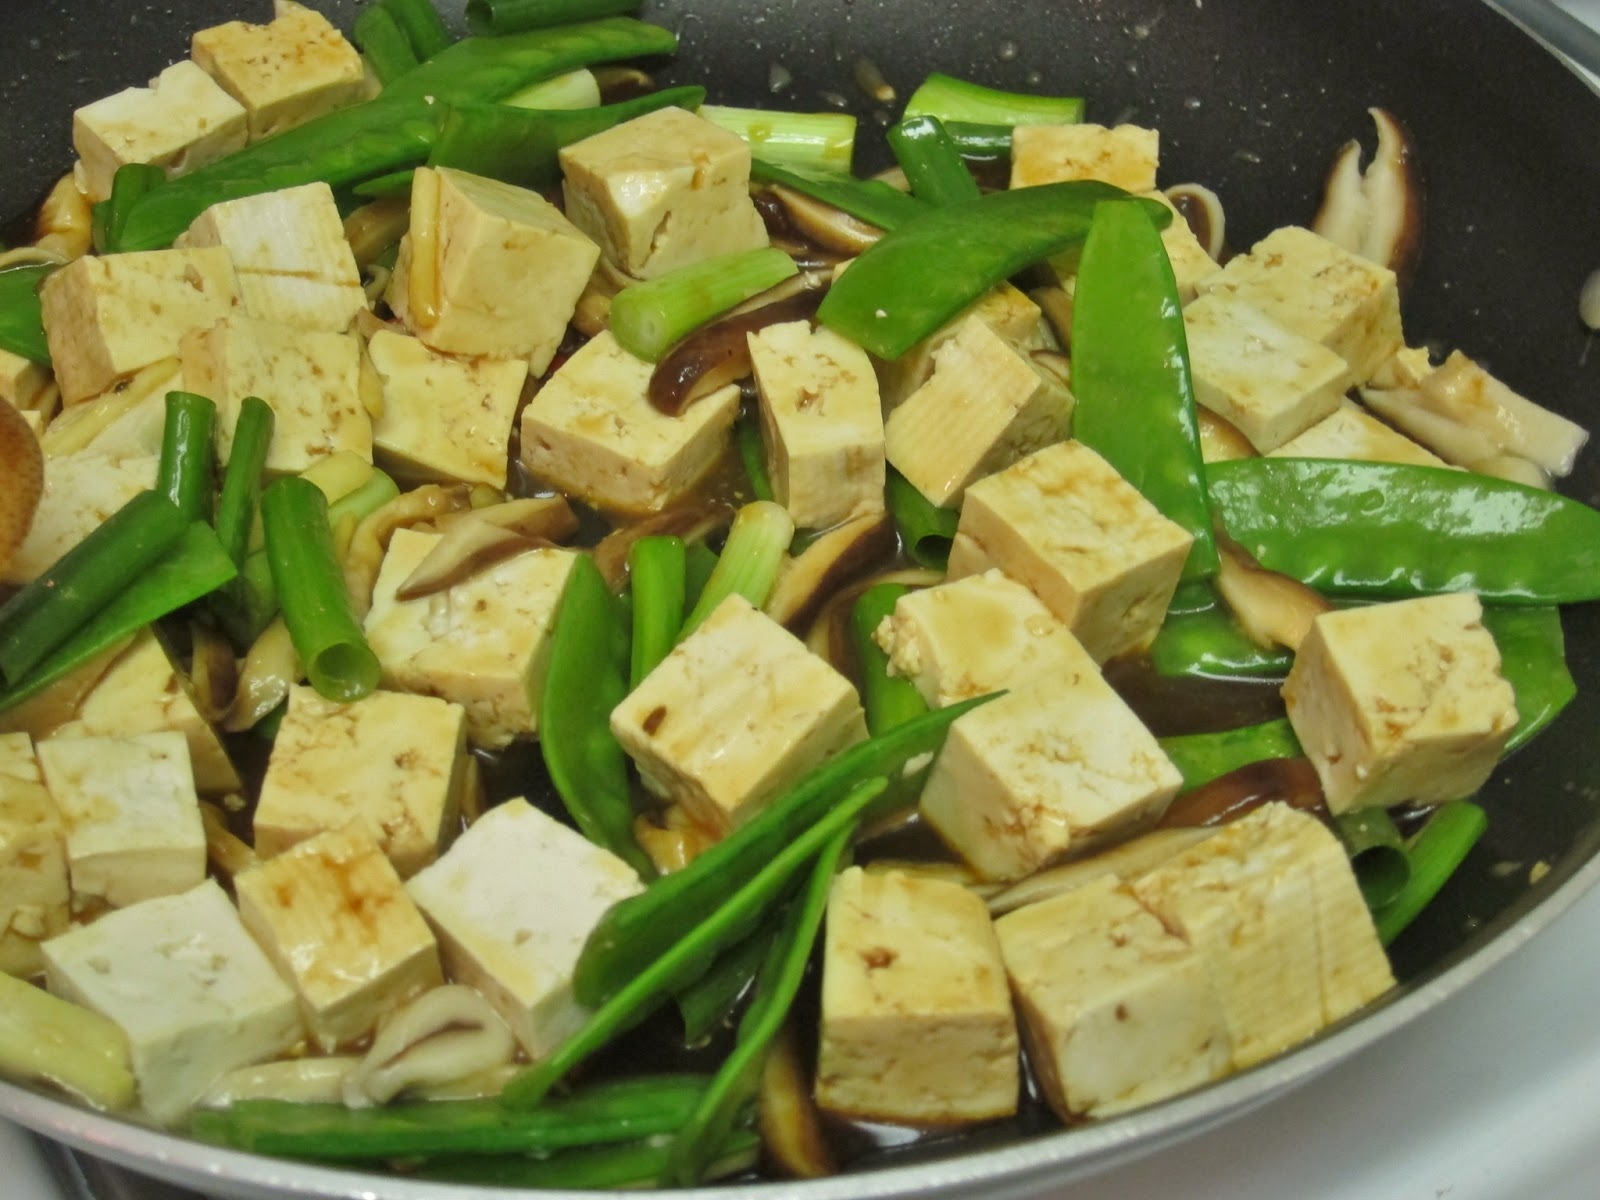 ... Vegan Chronicle: Stir-Fried Tofu, Shiitake Mushrooms, and Chinese Peas